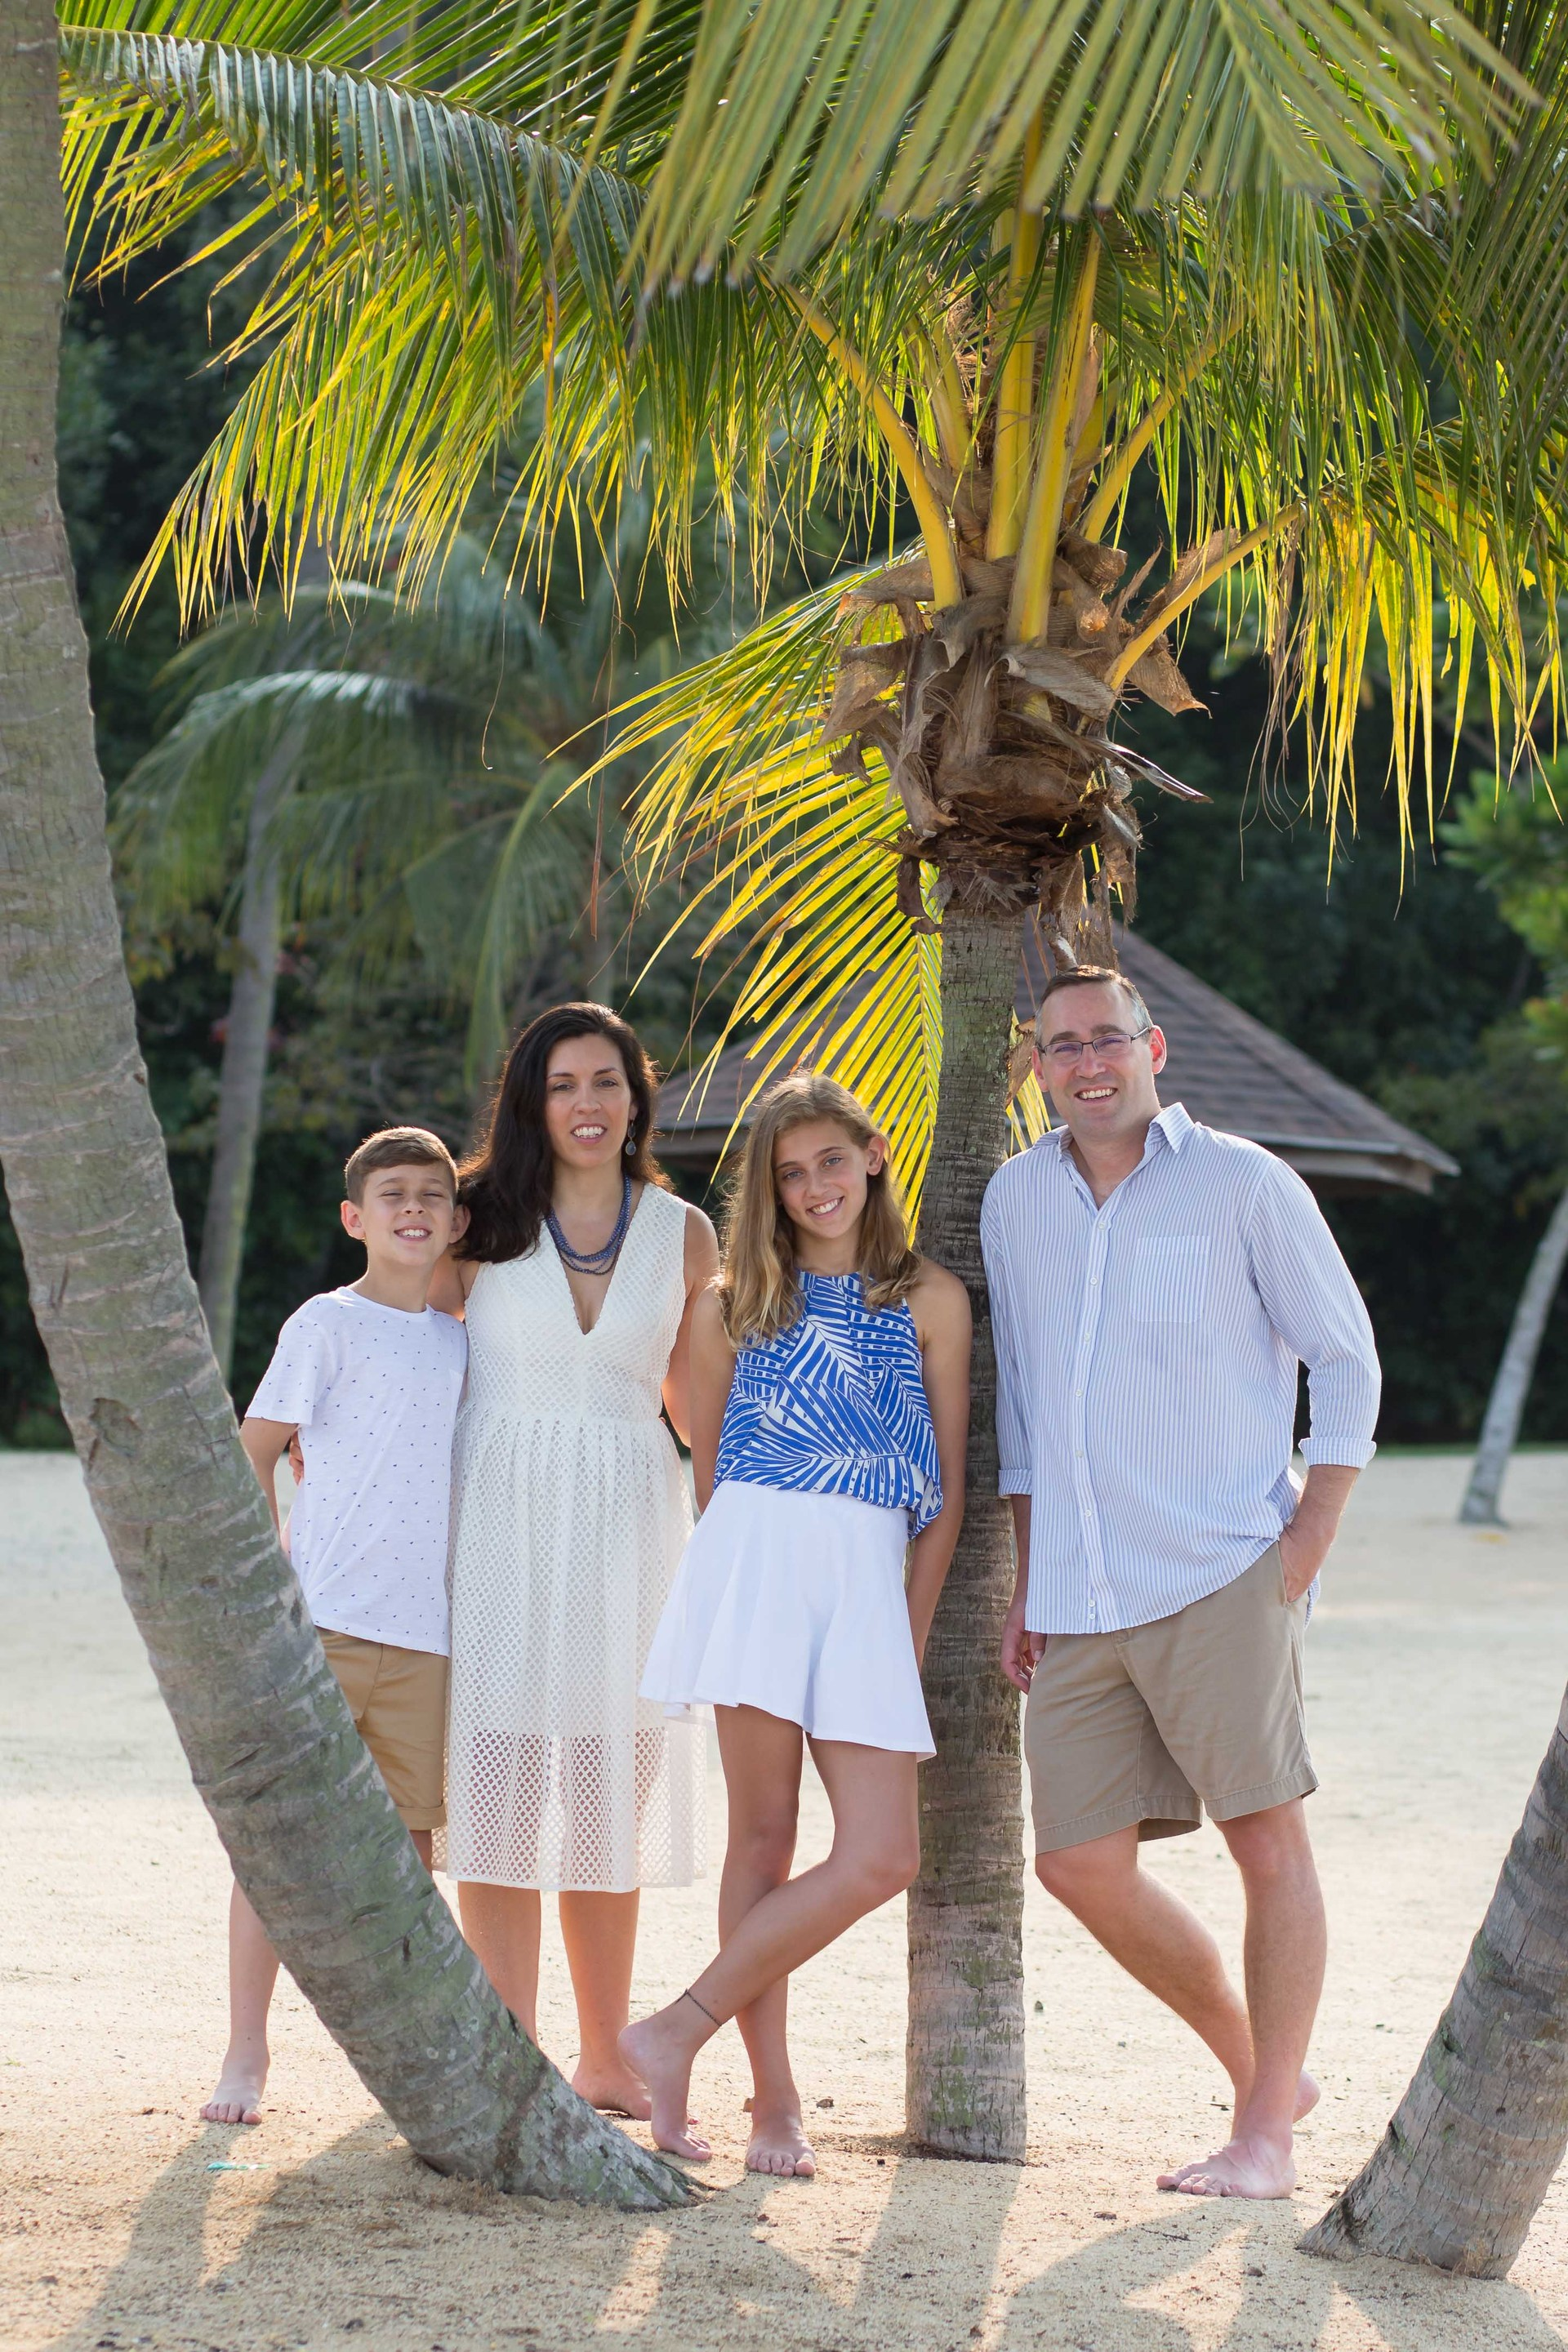 My family on the beach in Singapore.